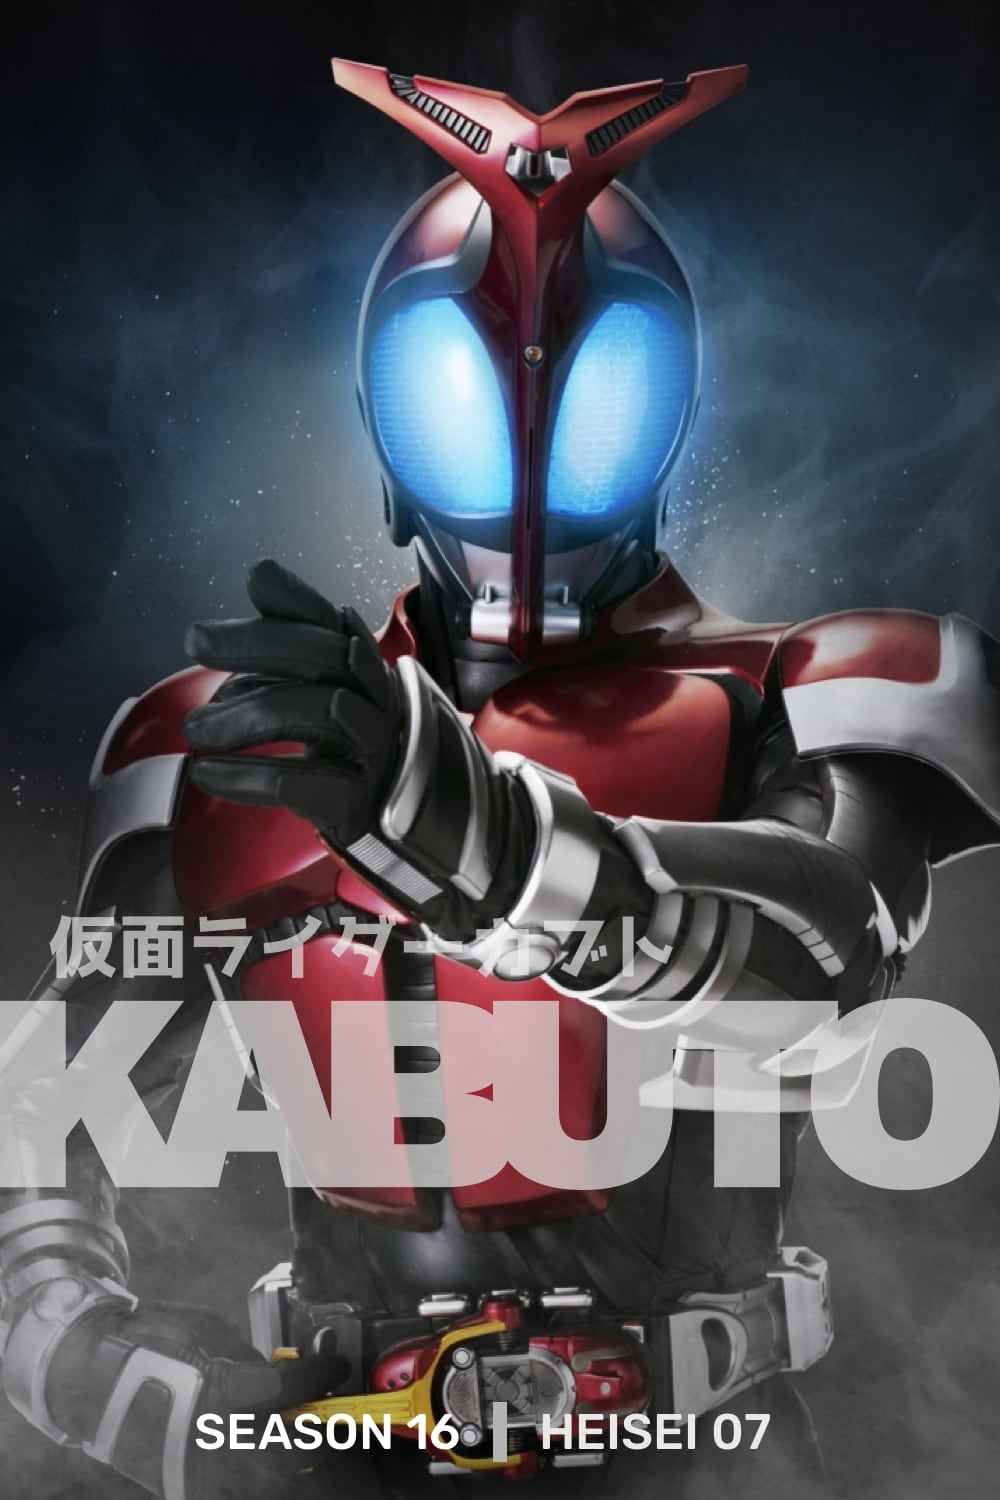 Kamen Rider - Season 21 Episode 30 : King, Panda, Memory of Flame Season 16